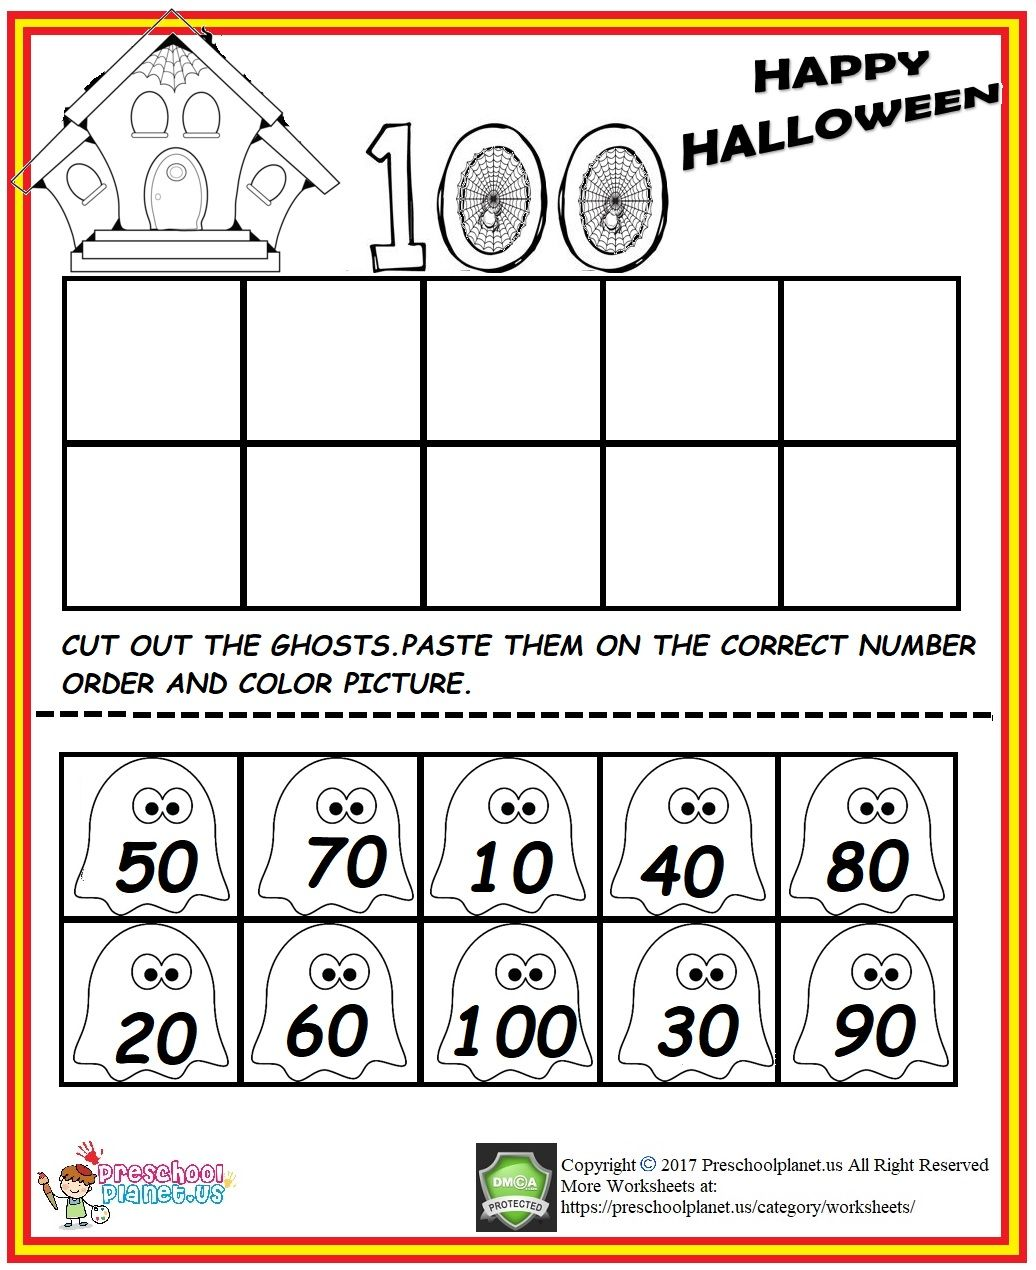 Halloween Number Order Worksheet